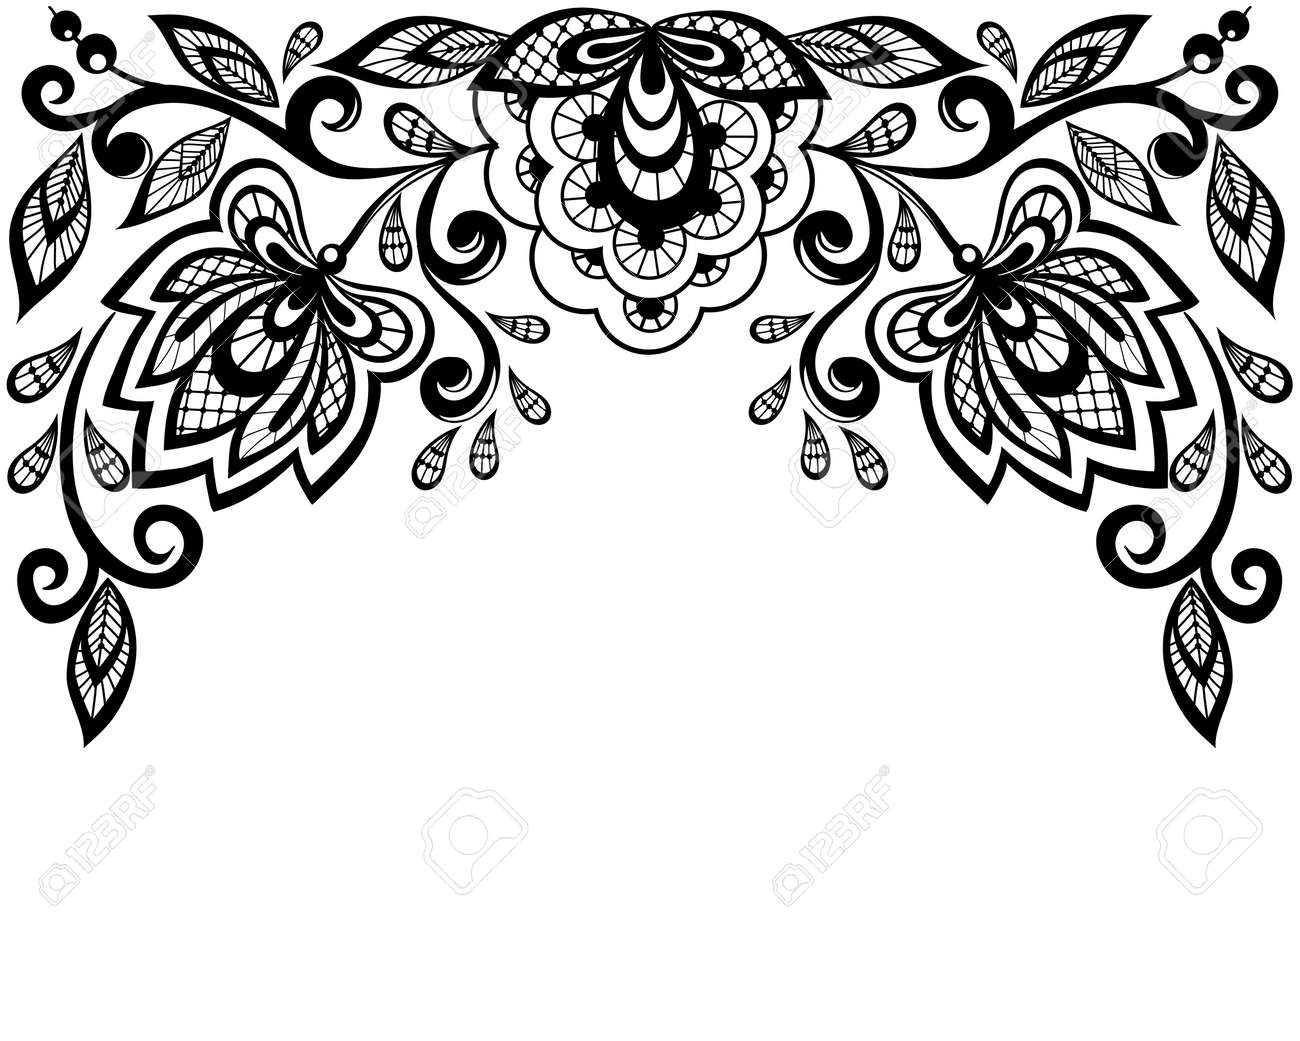 Black and white lace flowers and leaves isolated on white - 18276273